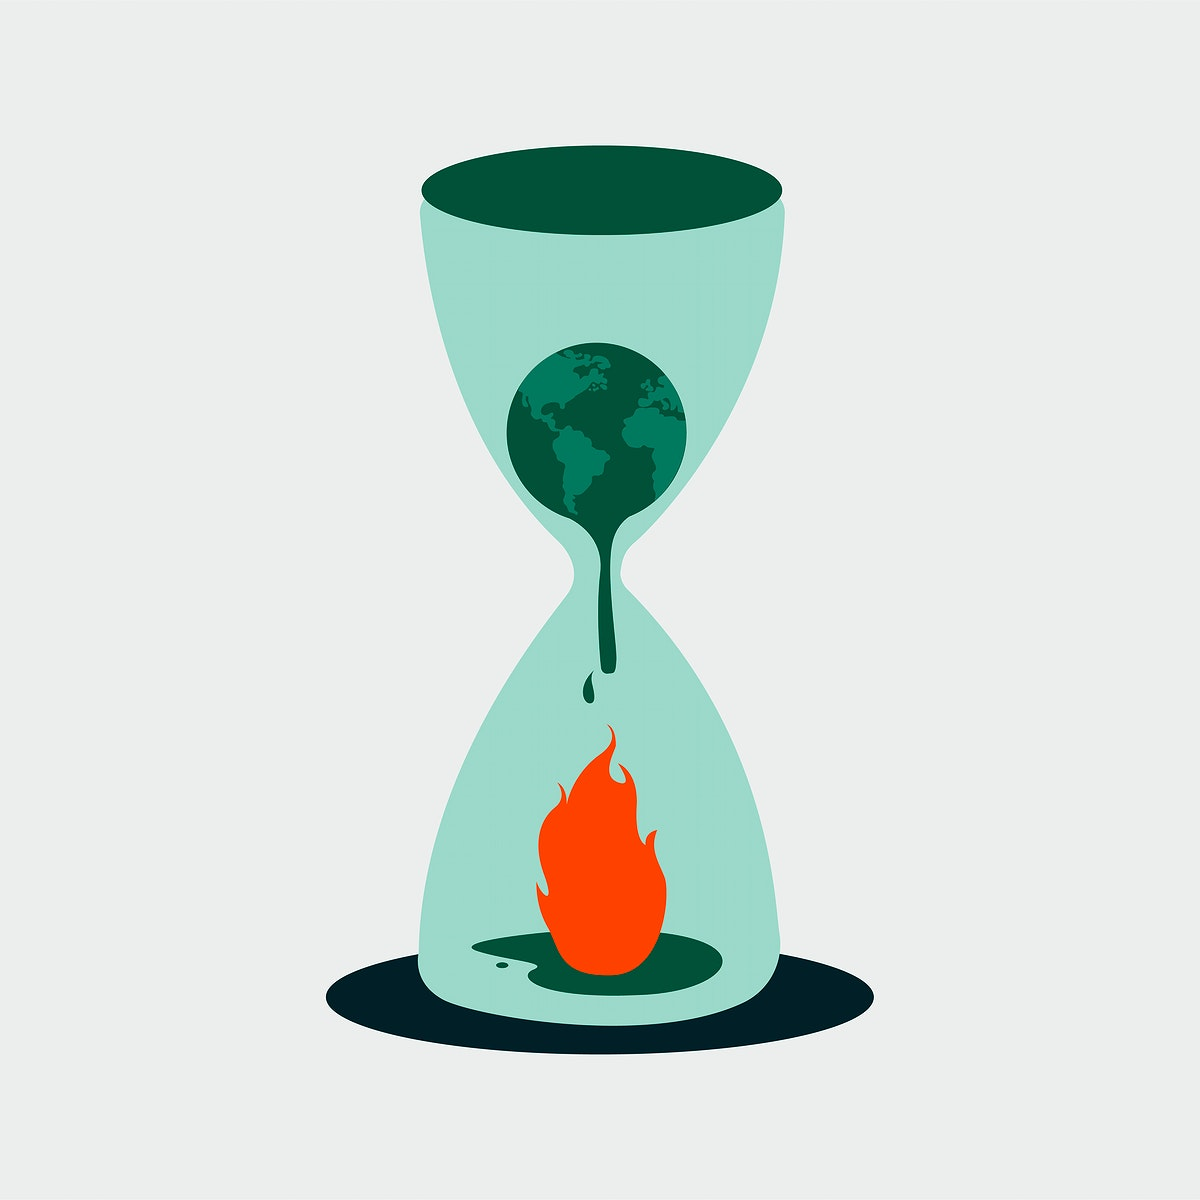 Earth melting in a hourglass with fire illustration